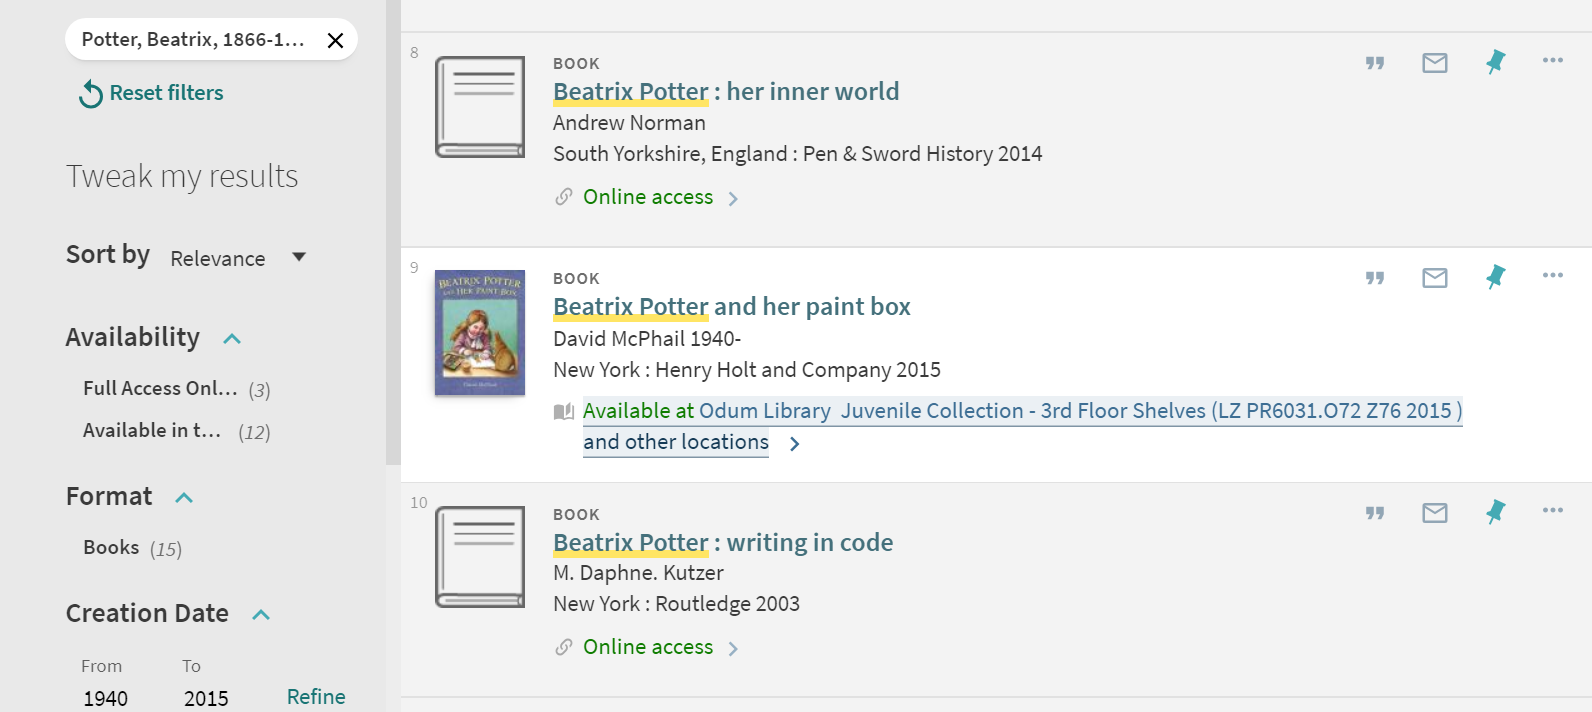 Search Results for Beatrix Potter showing Available and Online Access